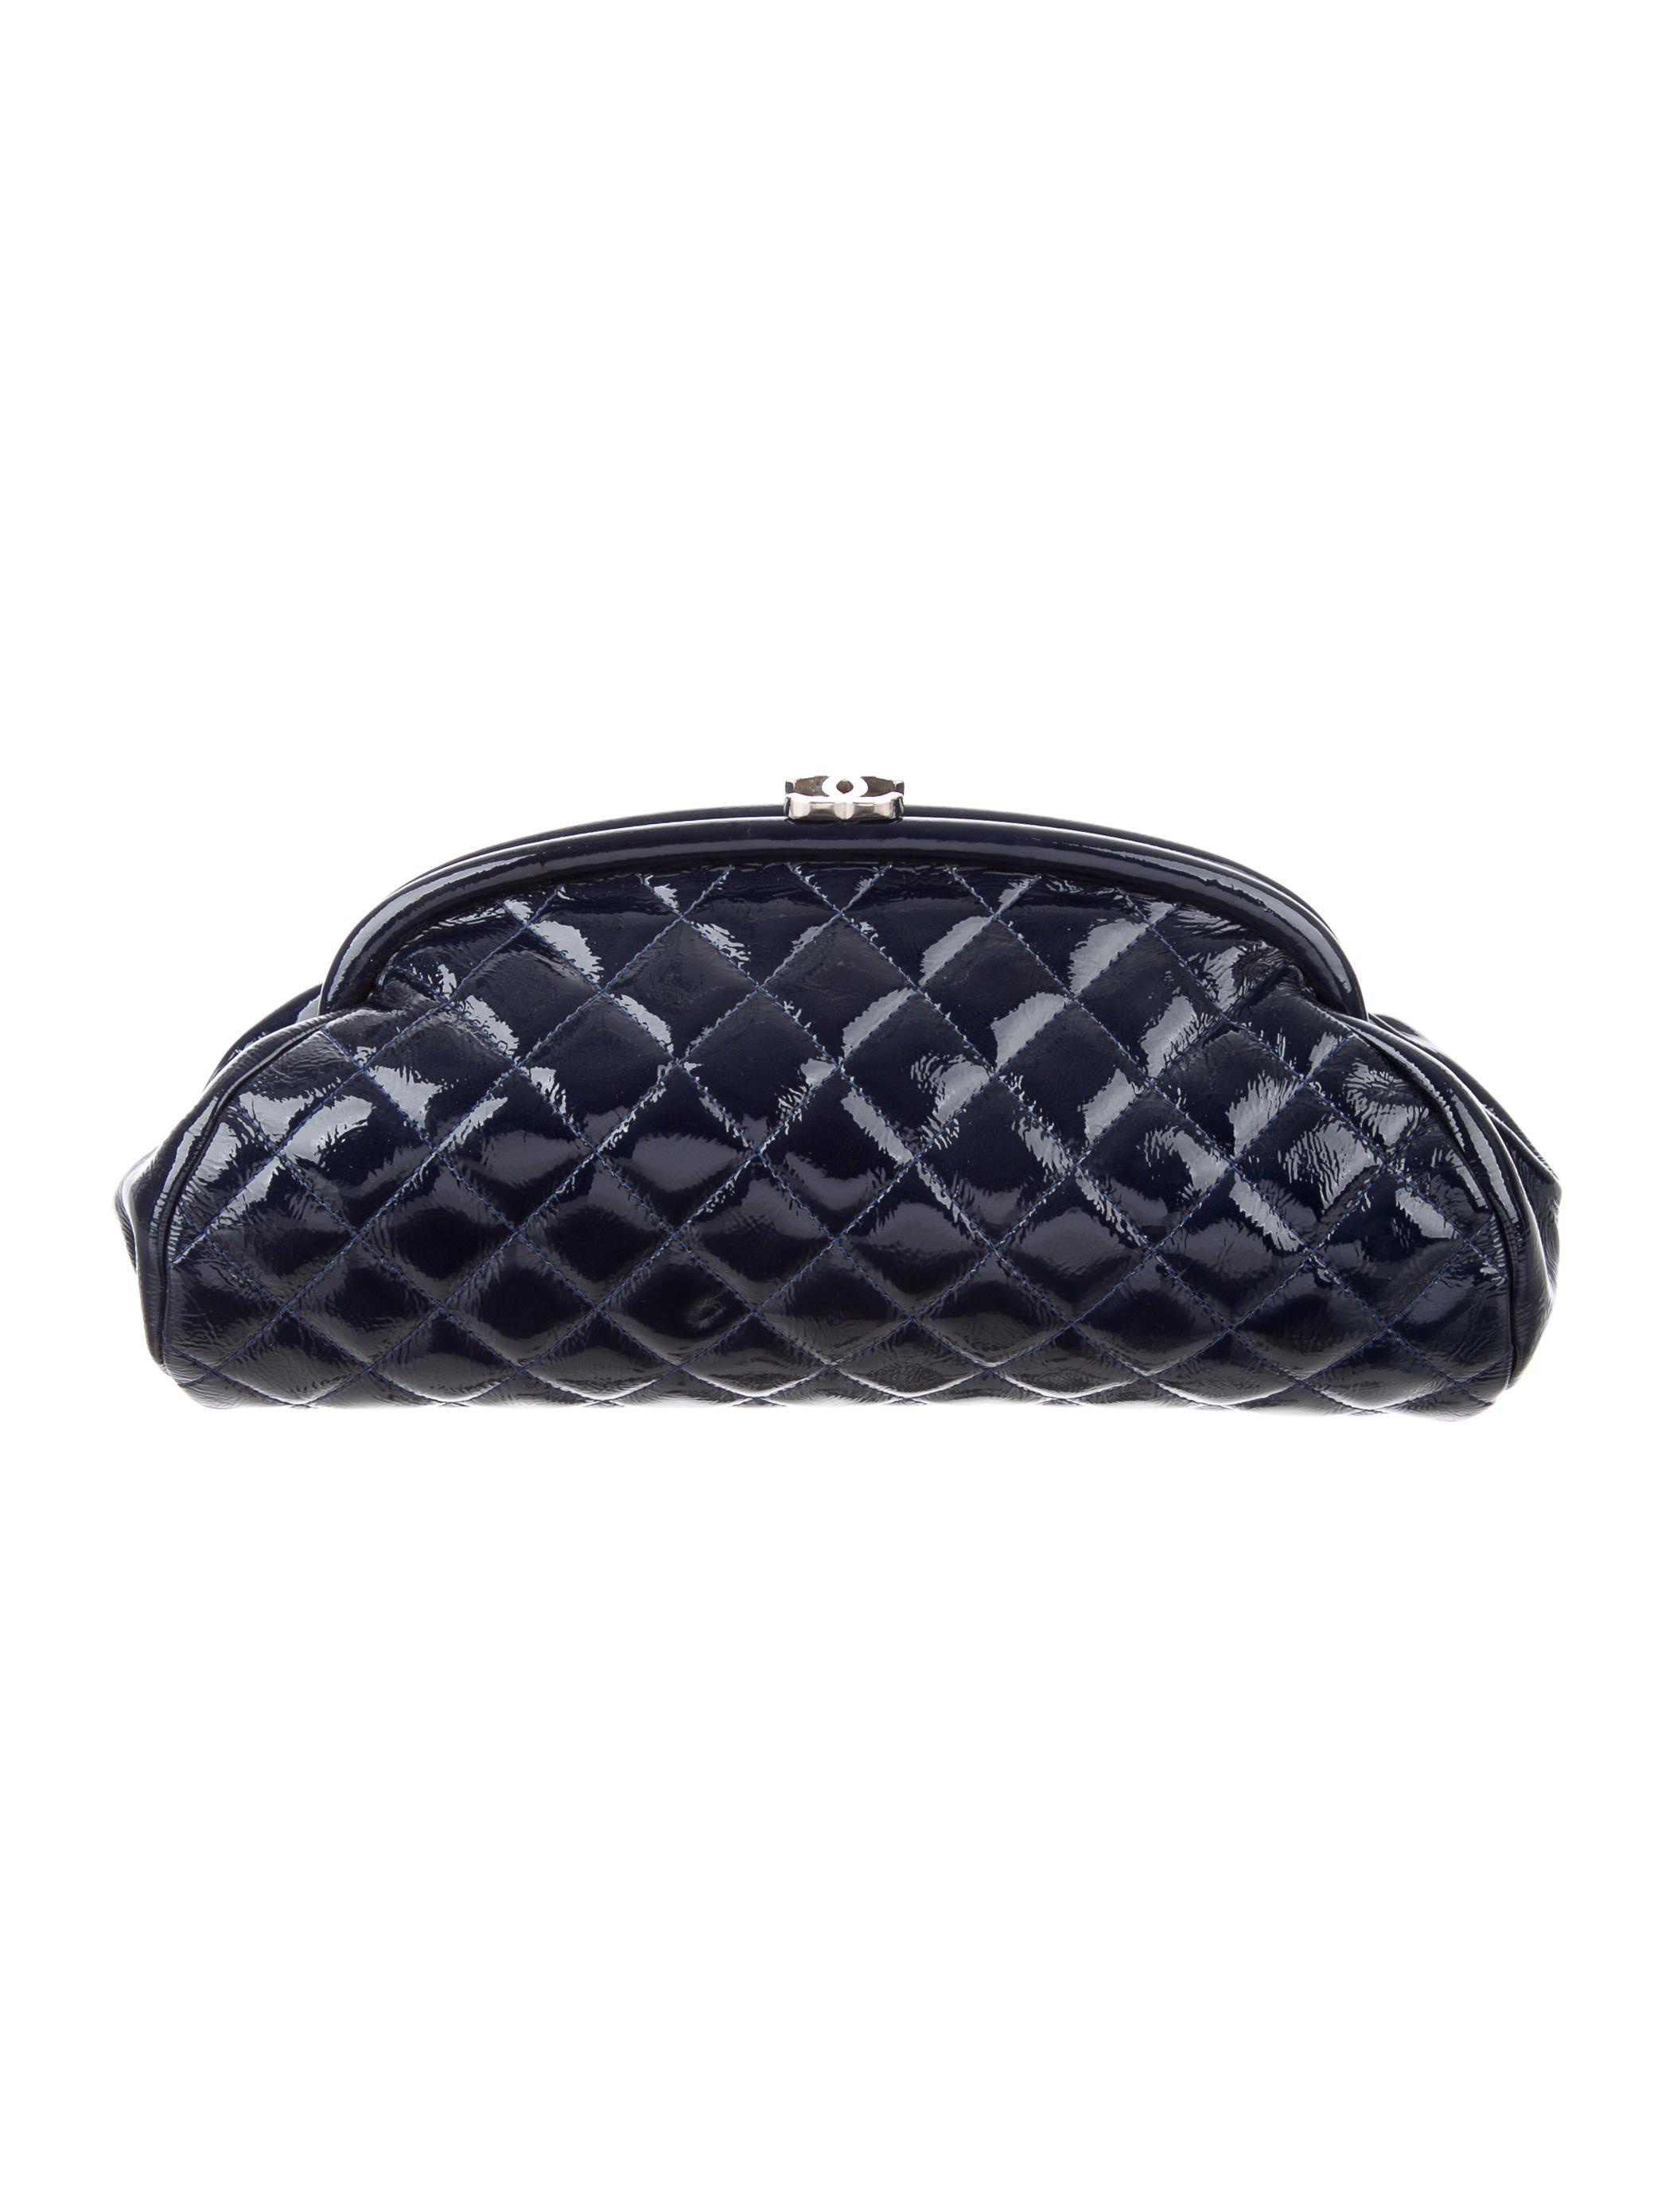 1752565af2db Lyst - Chanel Quilted Patent Timeless Clutch Navy in Metallic